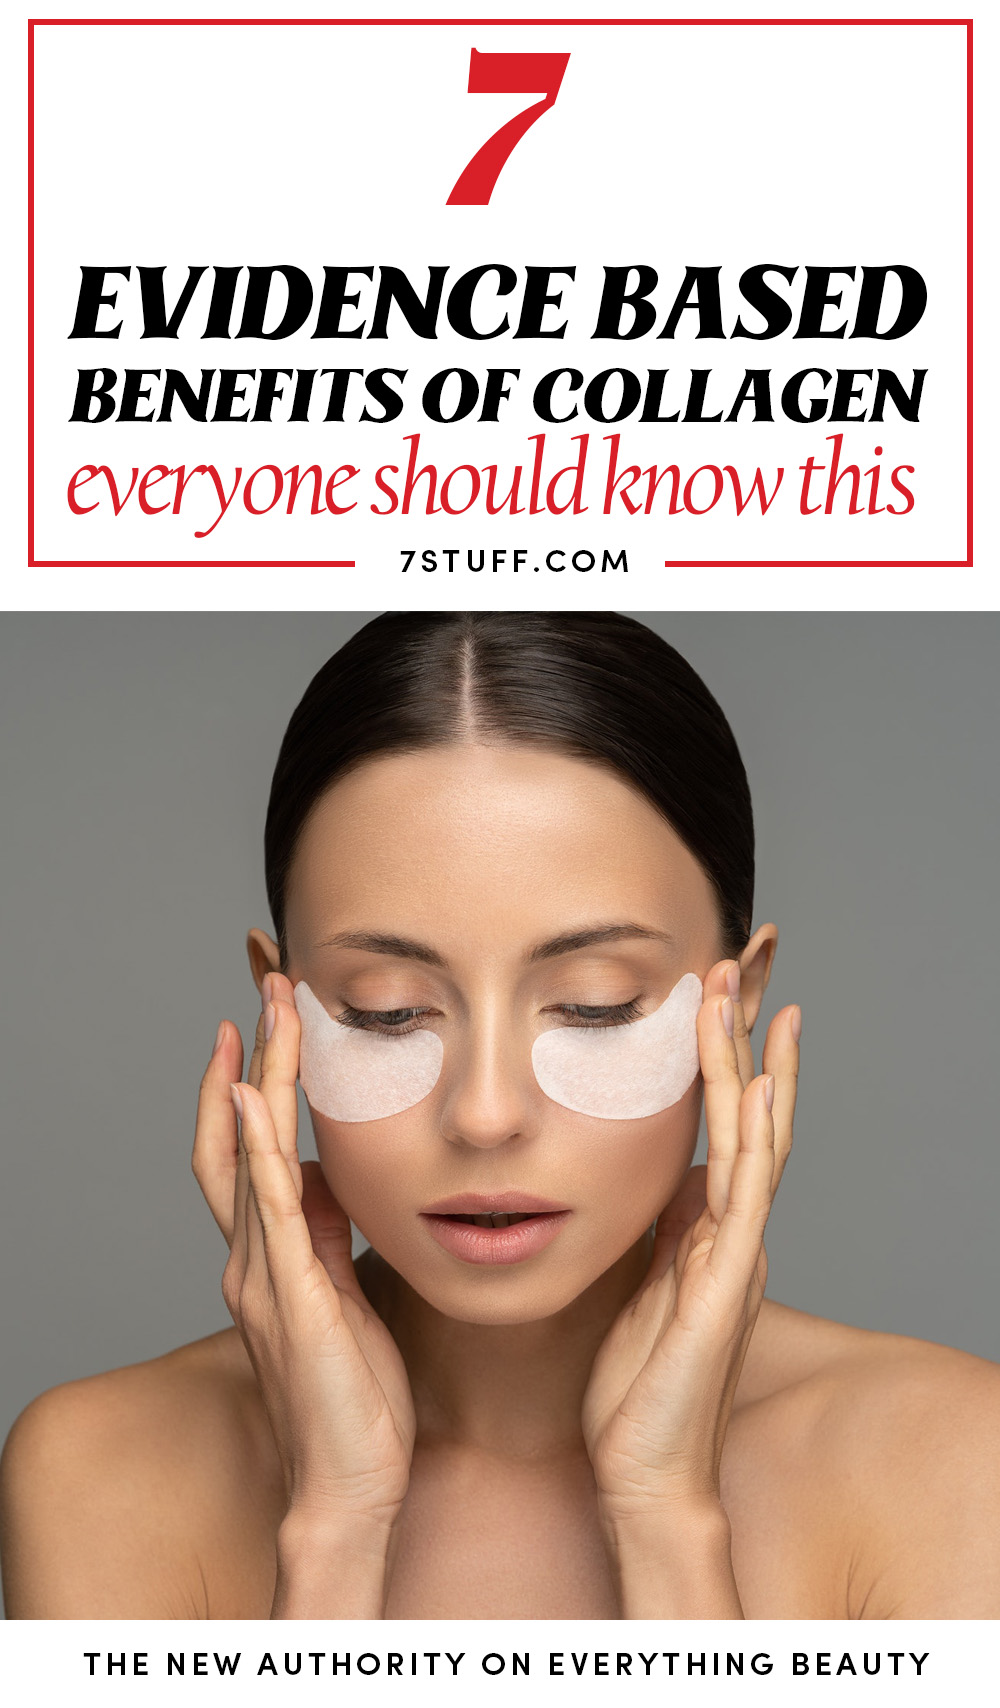 Evidence-Based Benefits Of Using Collagen For Hair, Skin, And Nails